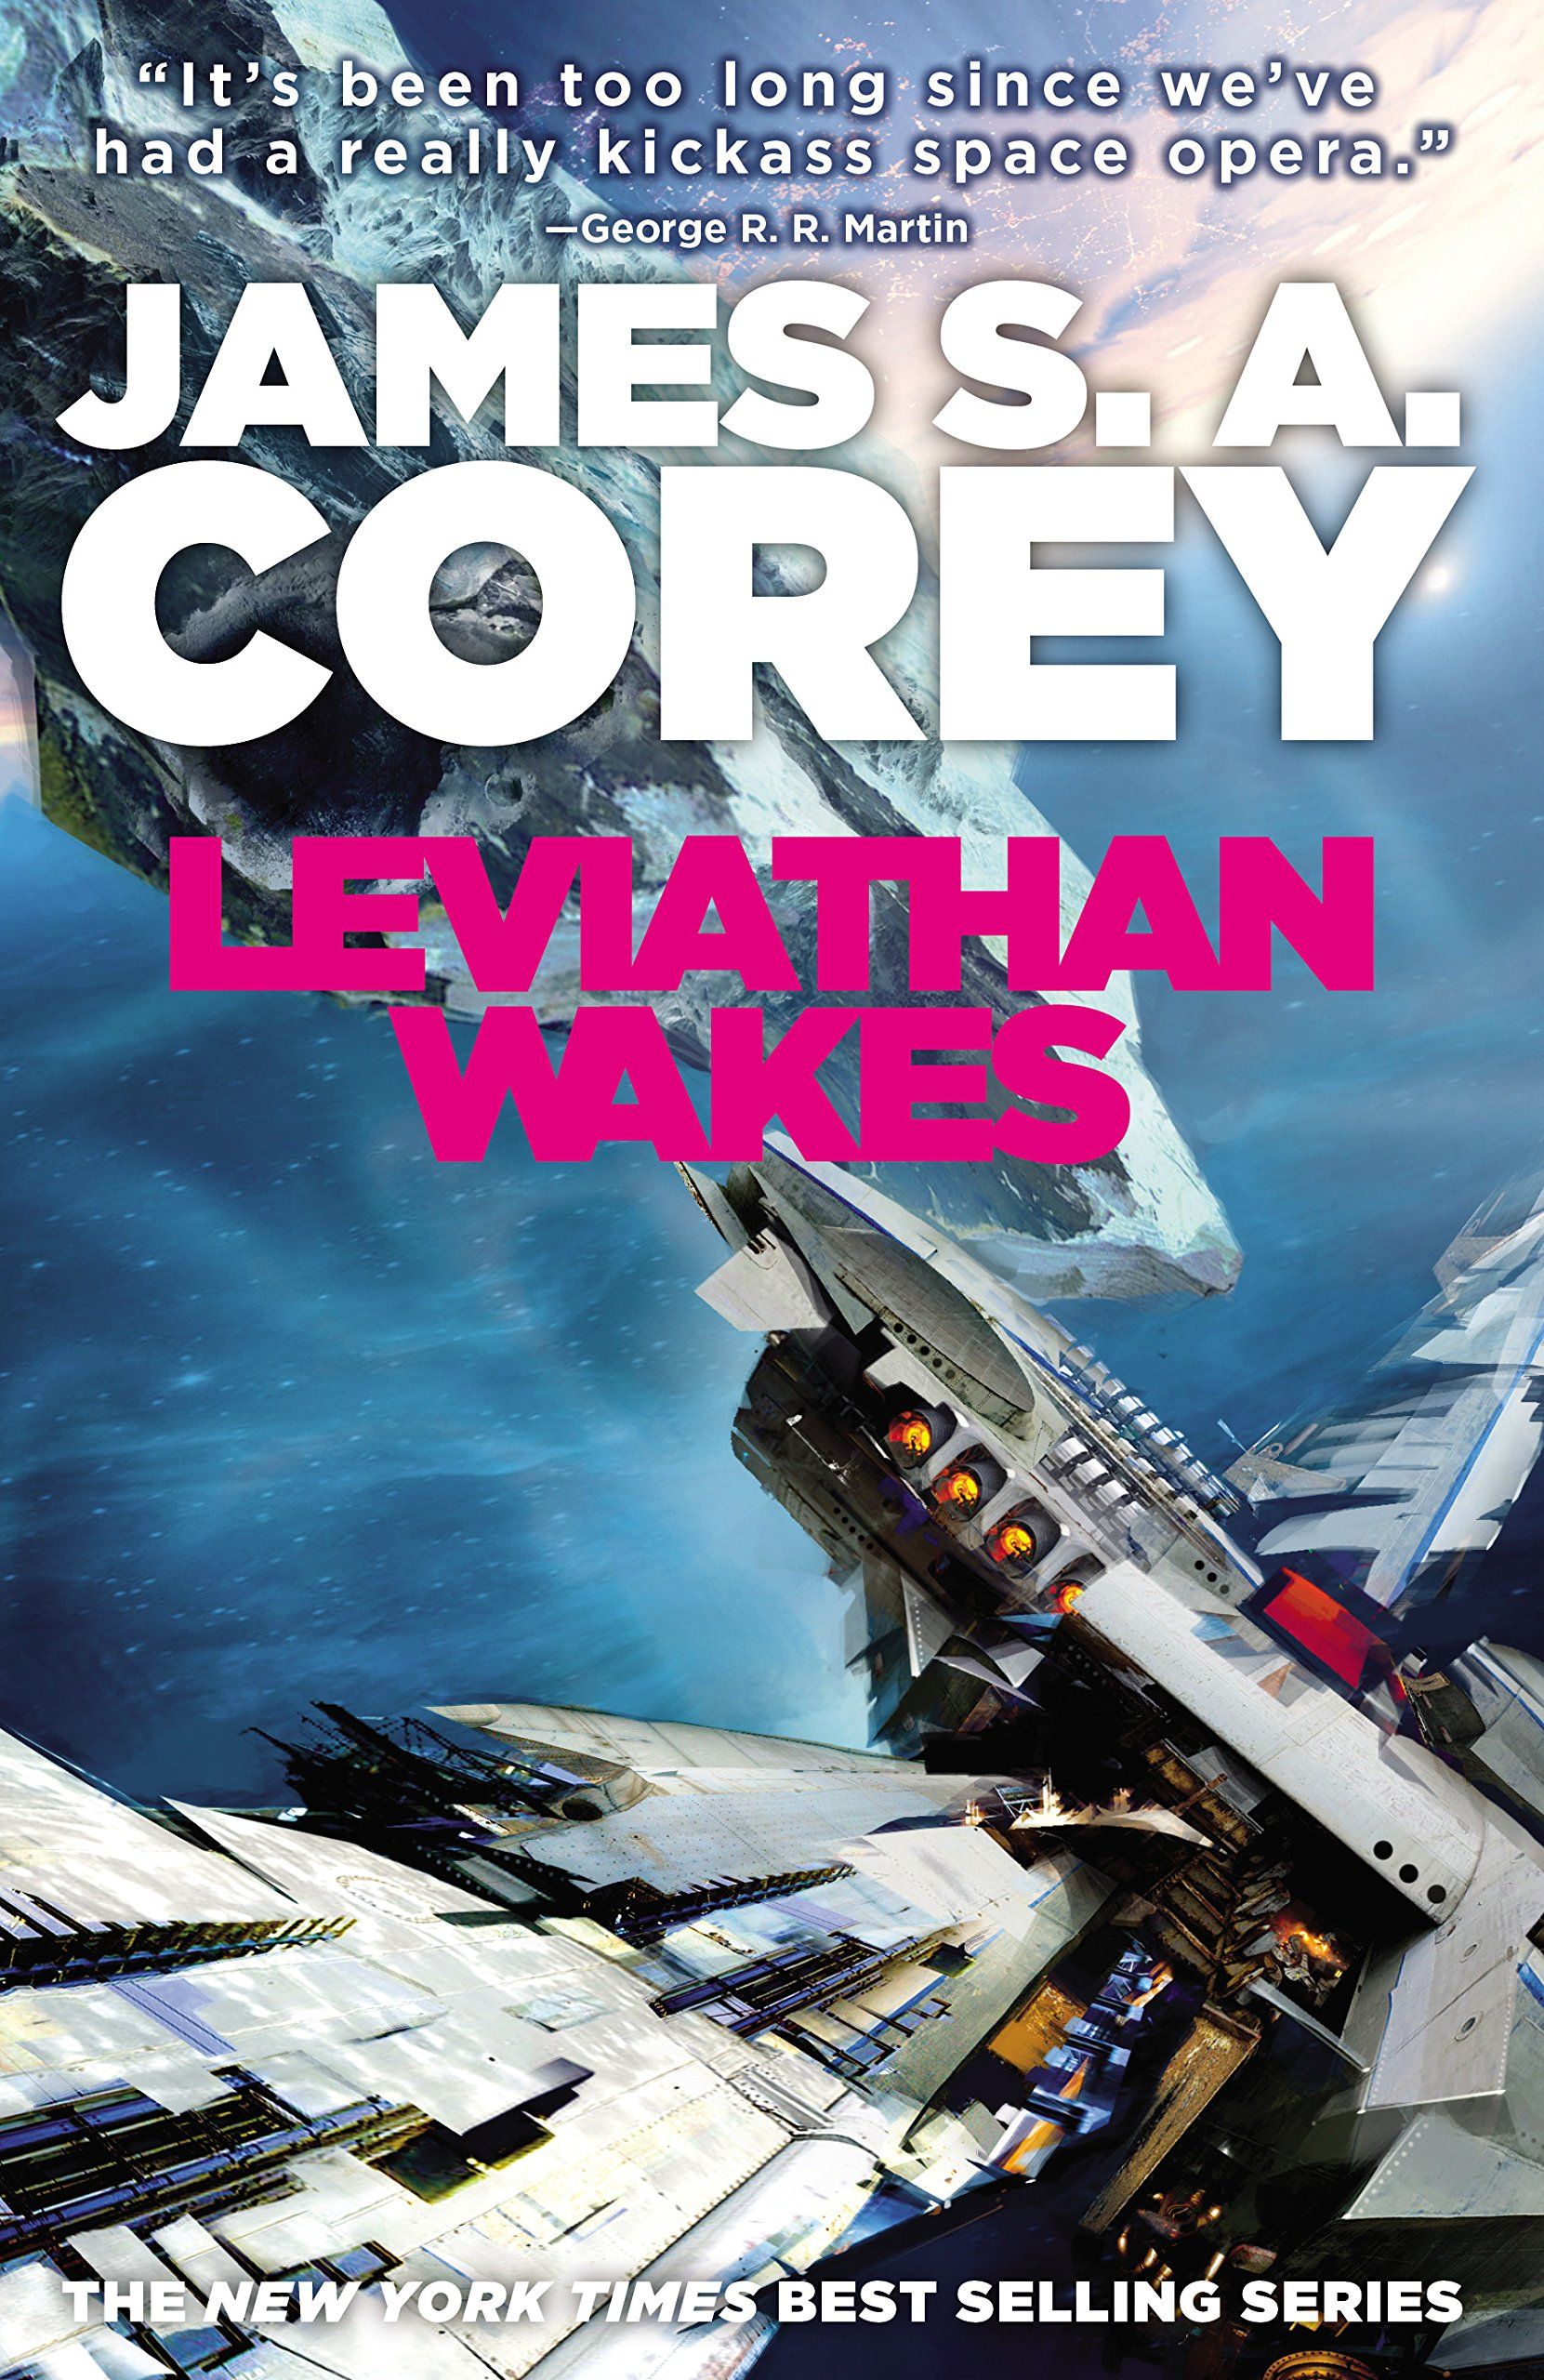 'Leviathan Awakes' by James Corey